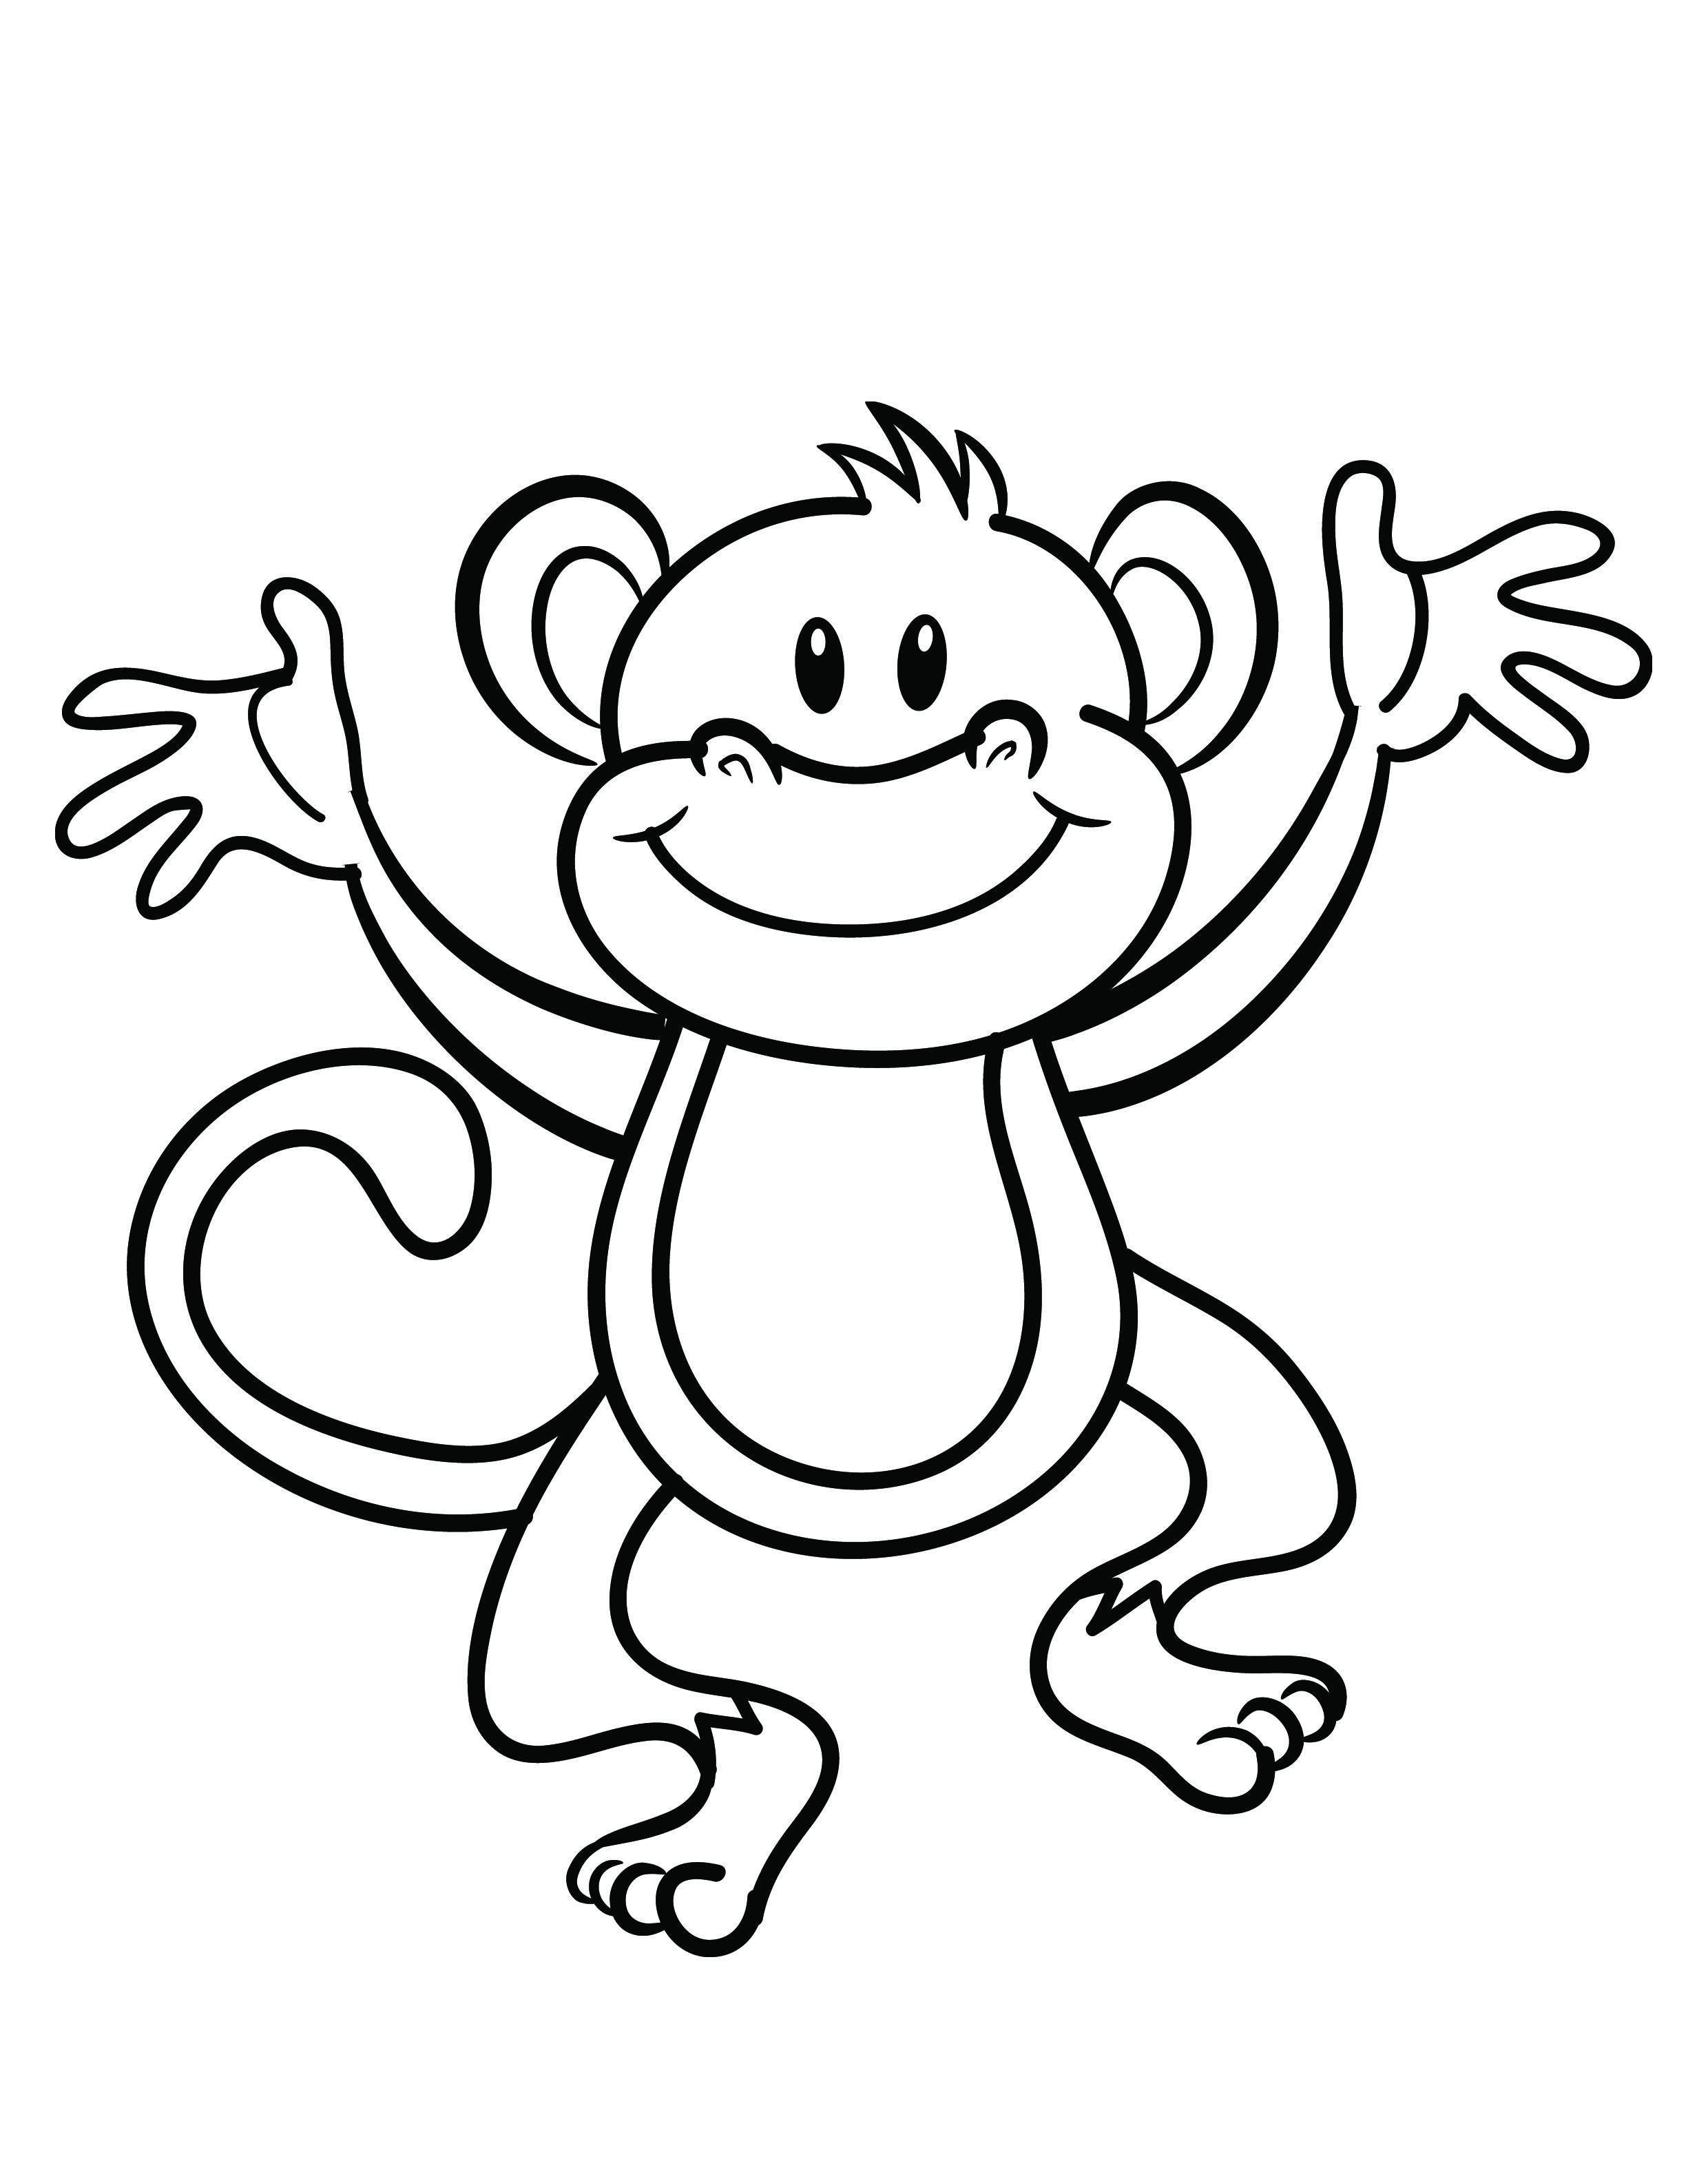 Free Printable Monkey Coloring Page | Cj 1St Birthday | Pinterest - Free Printable Monkey Coloring Pages